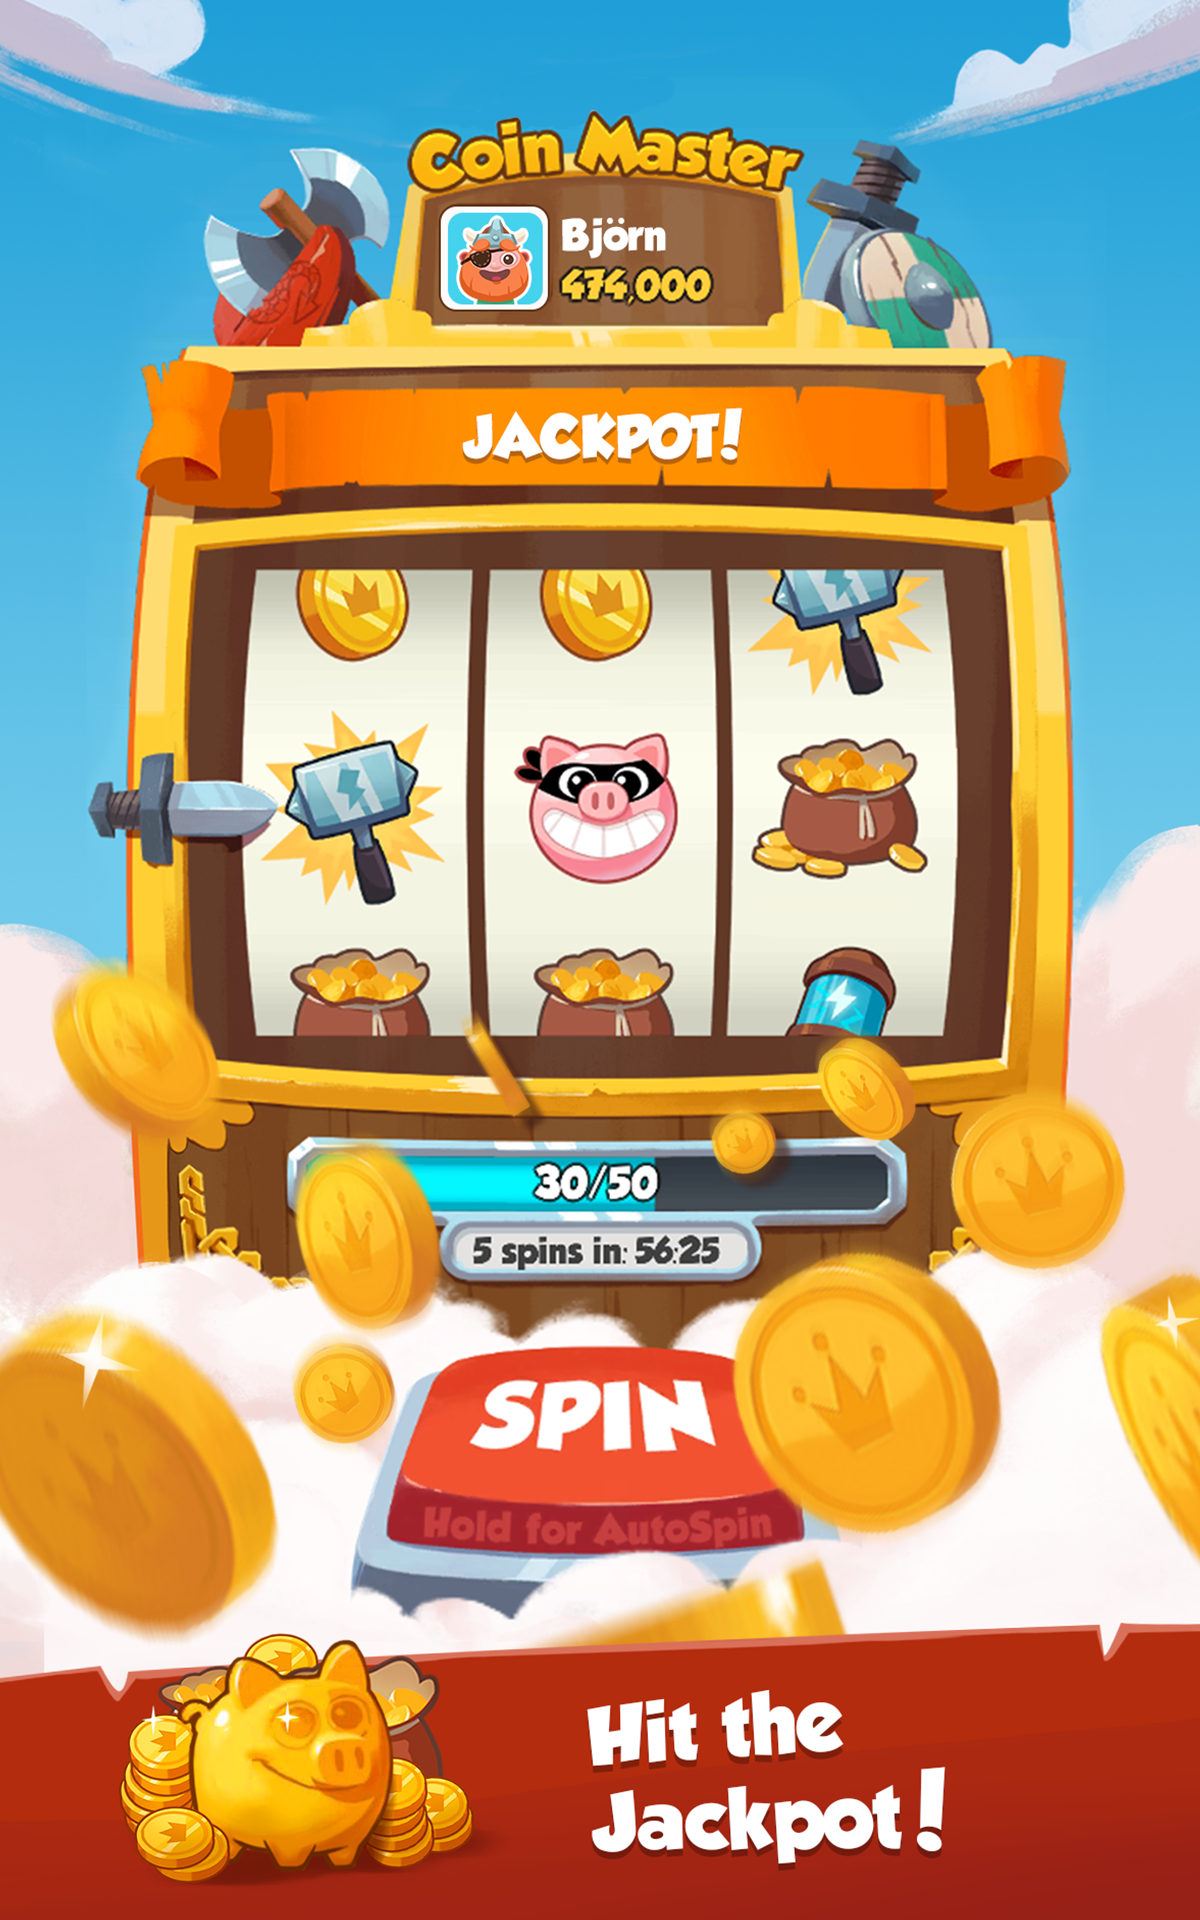 Coin Master Link For Spin